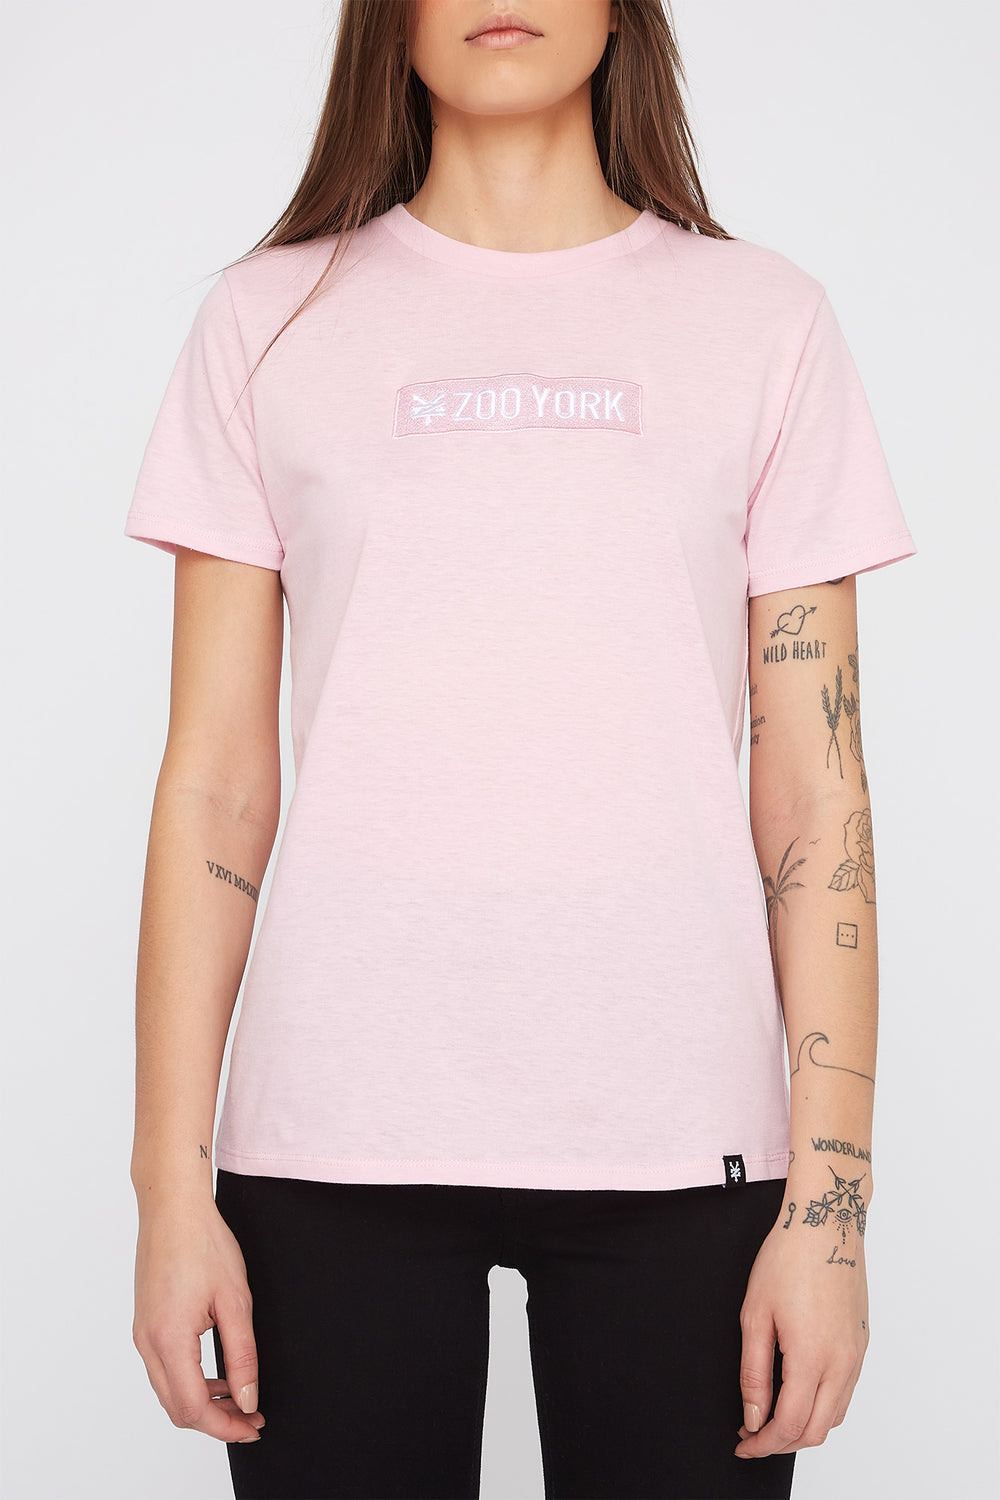 Zoo York Womens Pastel Box Logo T-Shirt Light Pink